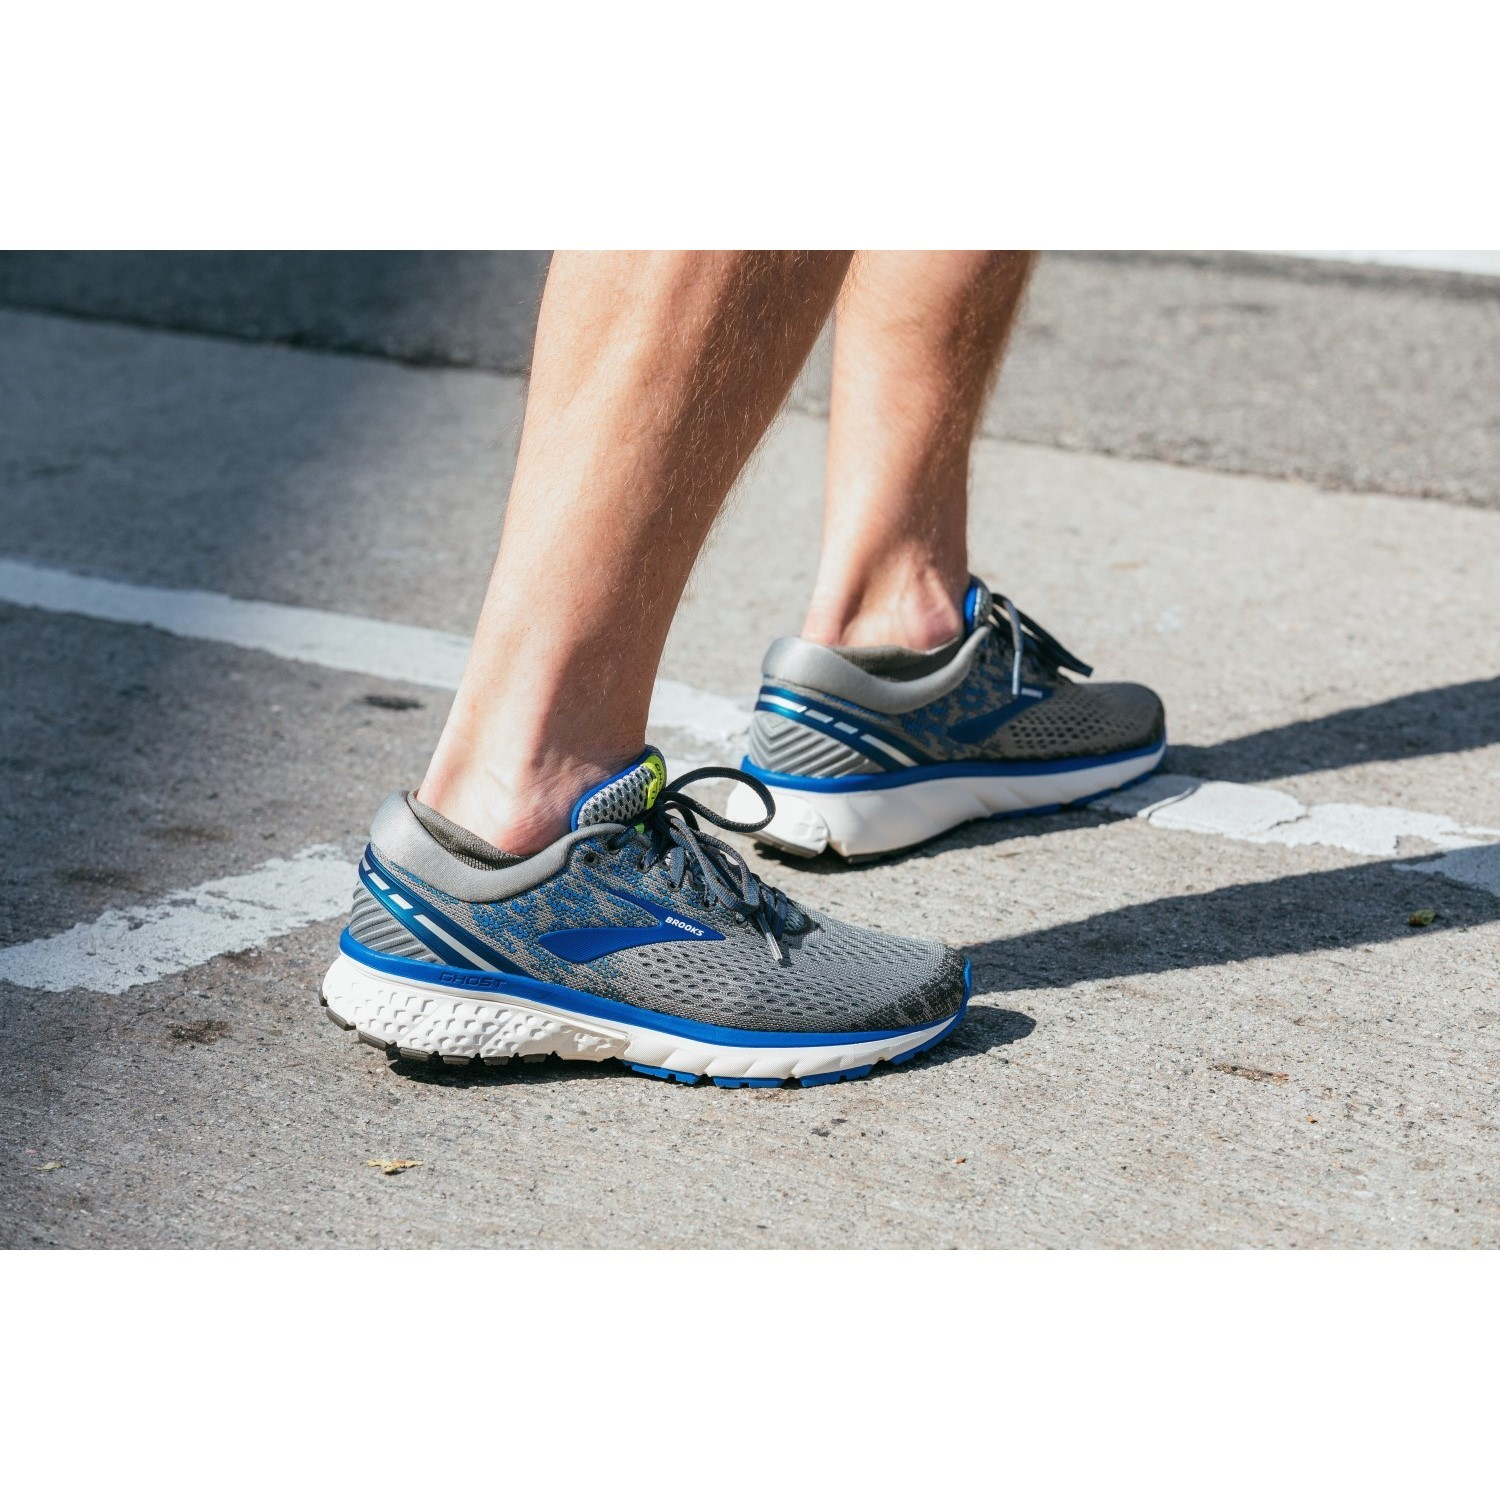 7639525b4e2 Brooks Ghost 11 - Mens Running Shoes - Grey Blue Silver